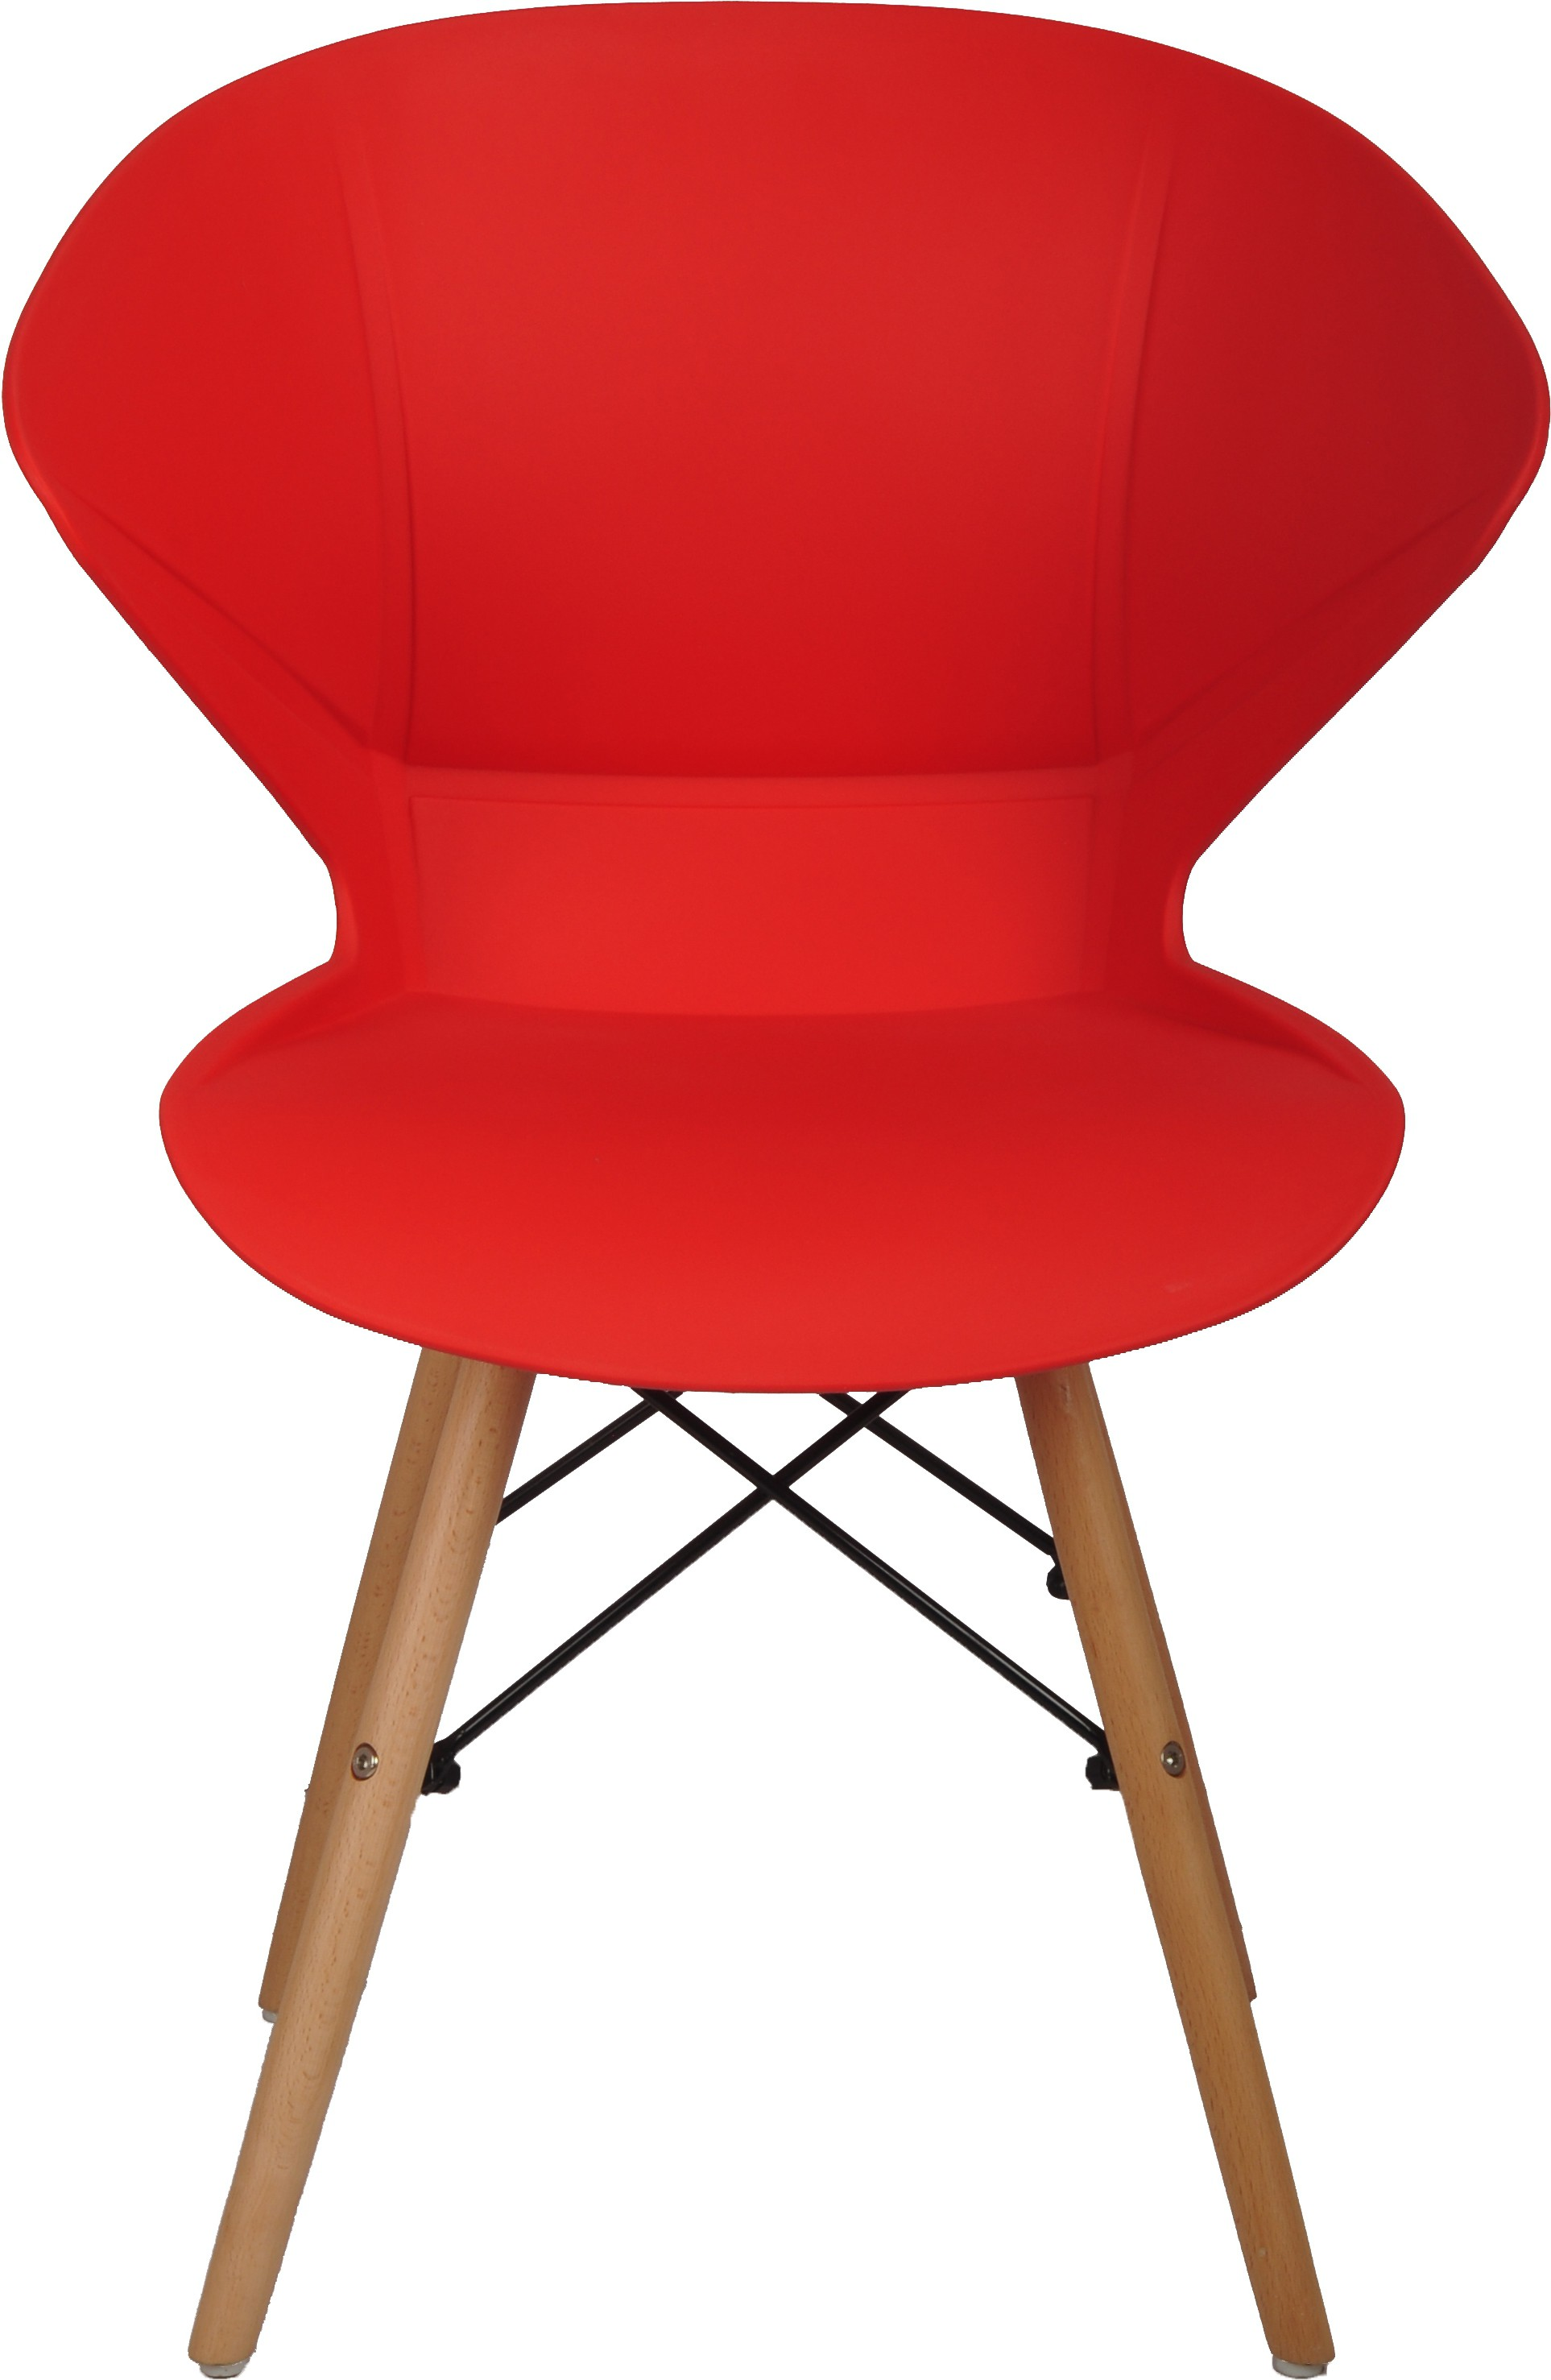 View Bharat Furniture Frog Plastic Living Room Chair(Finish Color - Red) Furniture (Bharat Furniture)